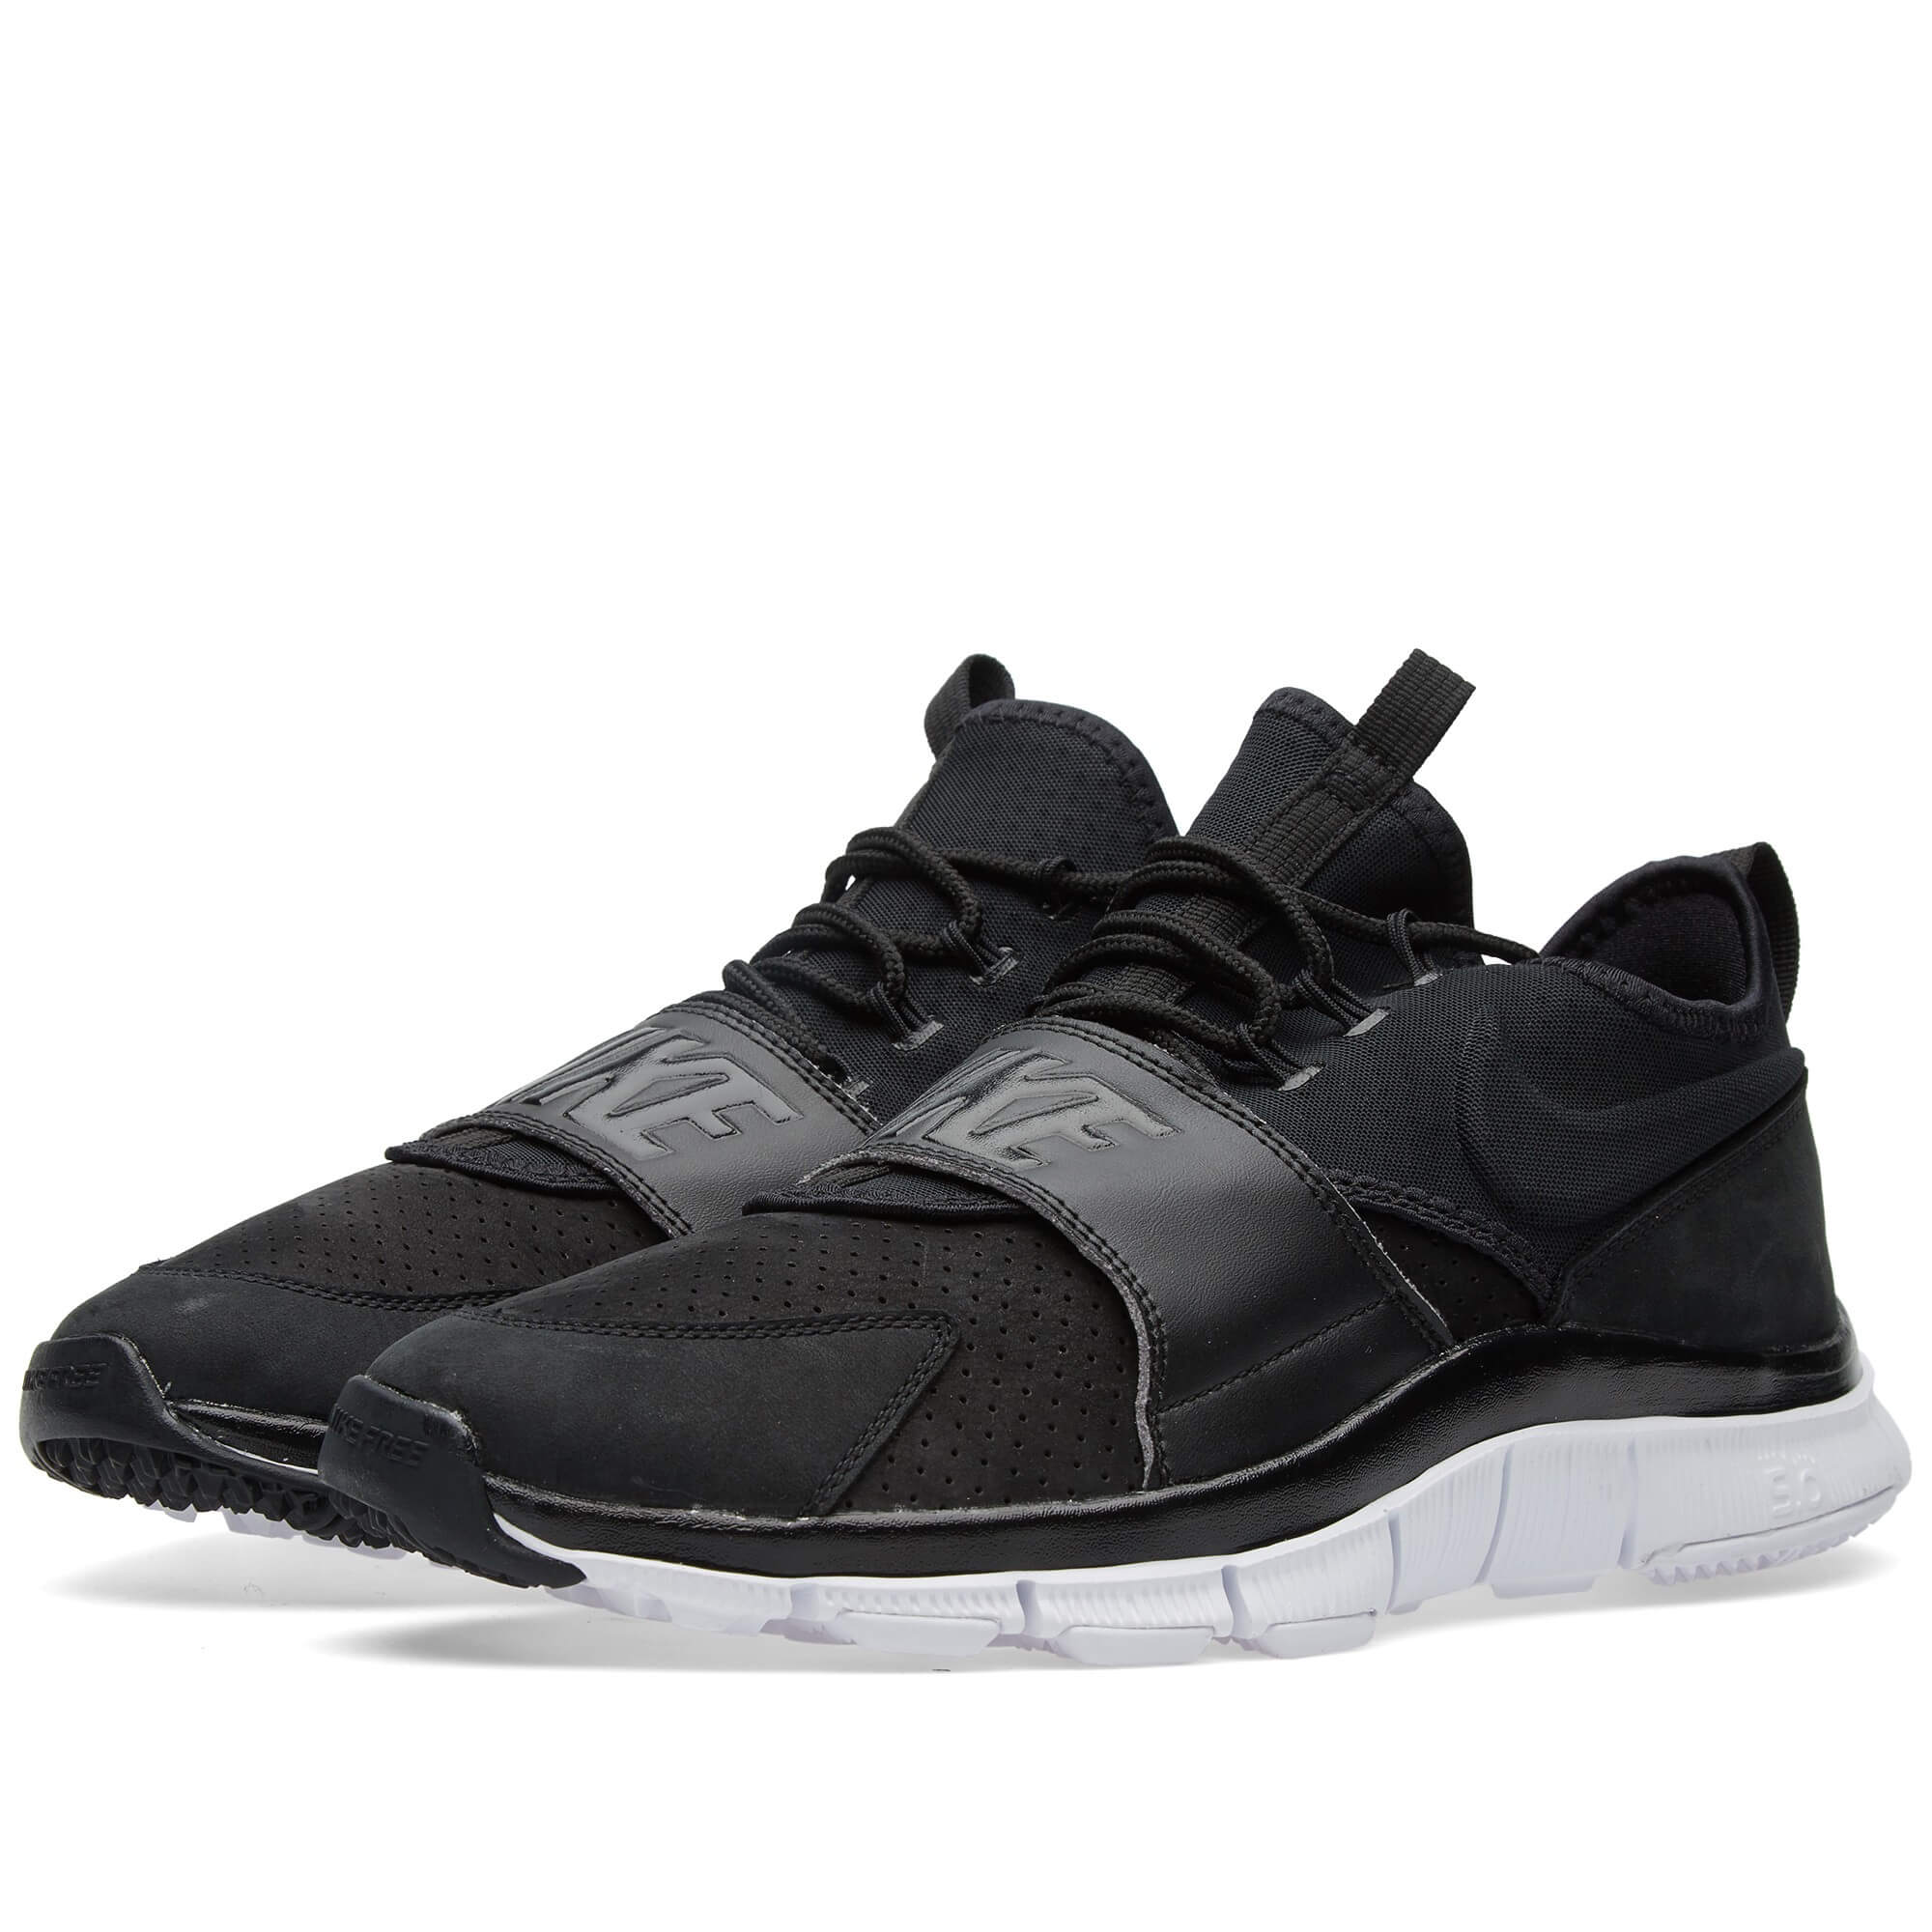 Nike Free Ace Leather Black | Where To